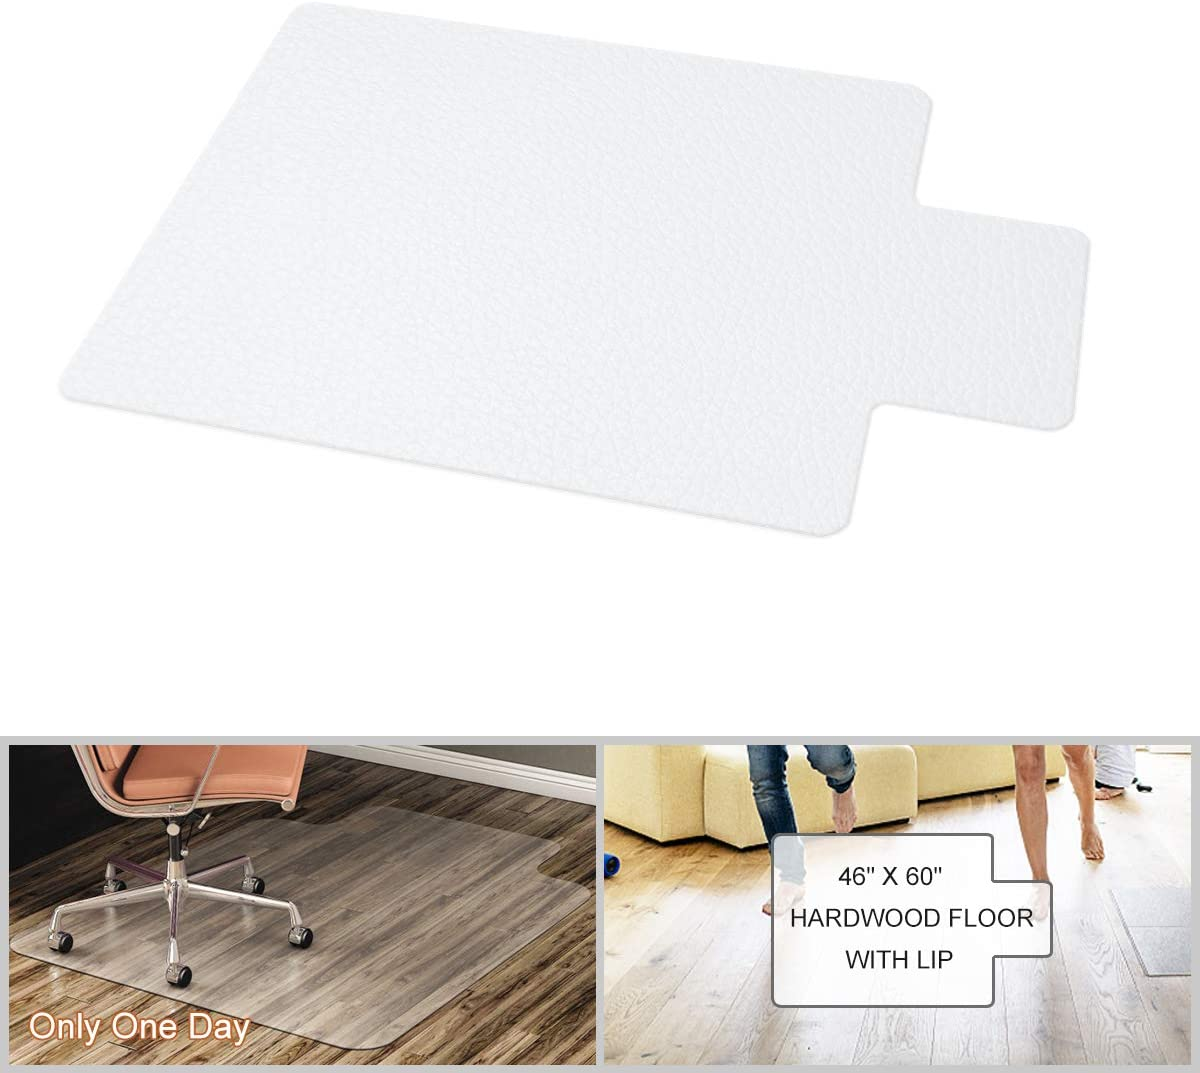 YOUKADA Office Chair Mat for Floor Protect Charlotte Mall Hardwood Max 40% OFF Tile